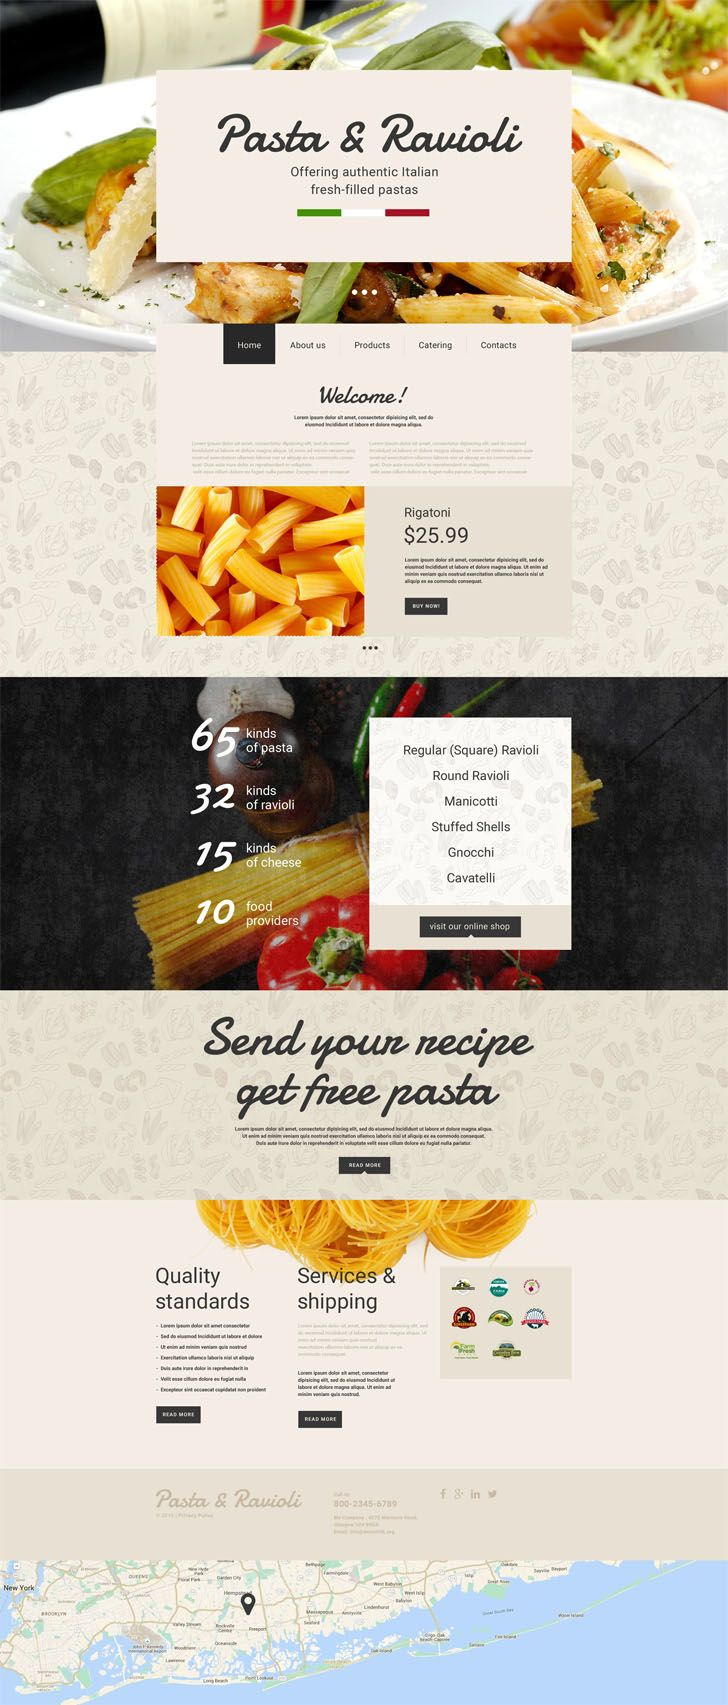 #Italian #Restaurant #Responsive #Website #Template.Additional Features: Sliced PSD, Back To Top Button, Crossbrowser Compatibility, Dropdown Menu, Favicon, Google map, Google Web Fonts Animation: HTML plus JS, Parallax Categories View: Grid Coding: 1170 Grid System, CSS 3, HTML 5, JQuery, Semantic Code, Valid Coding, Sass Features: On-line chat, Responsive, Theme Color Switcher Gallery Script: Carousel, Slider Language support: English Web Forms: Contact Form